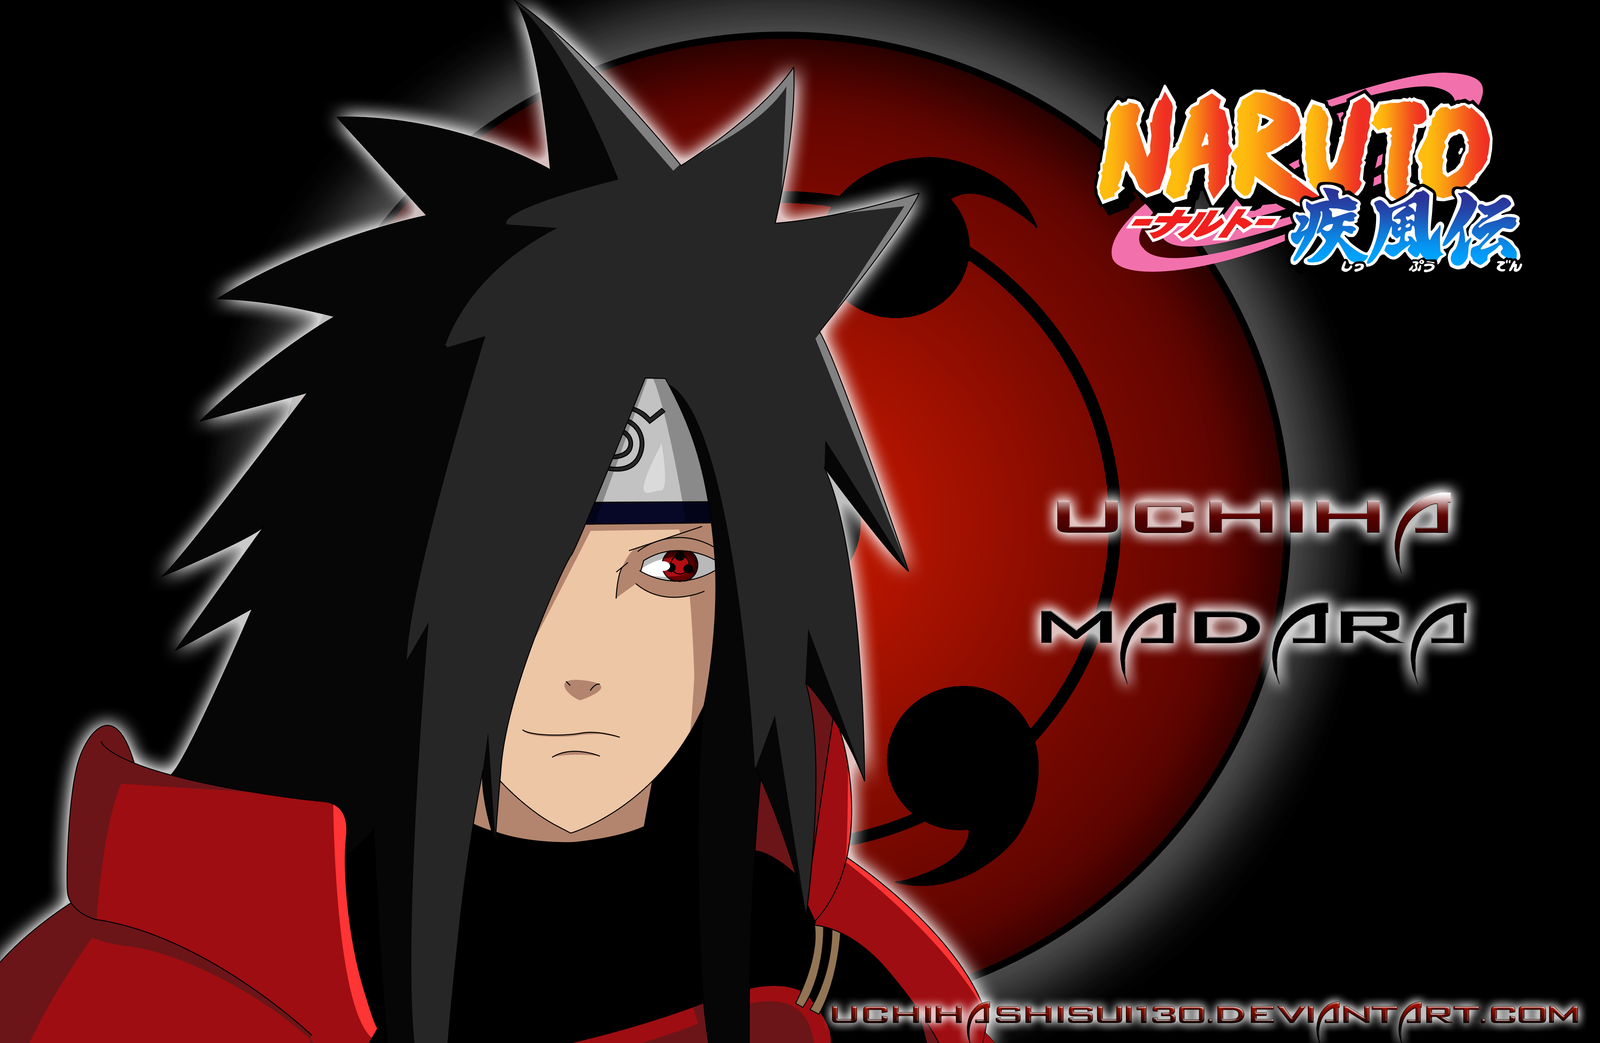 Uchiha Madara Wallpaper by uchihashisui130 1600x1043